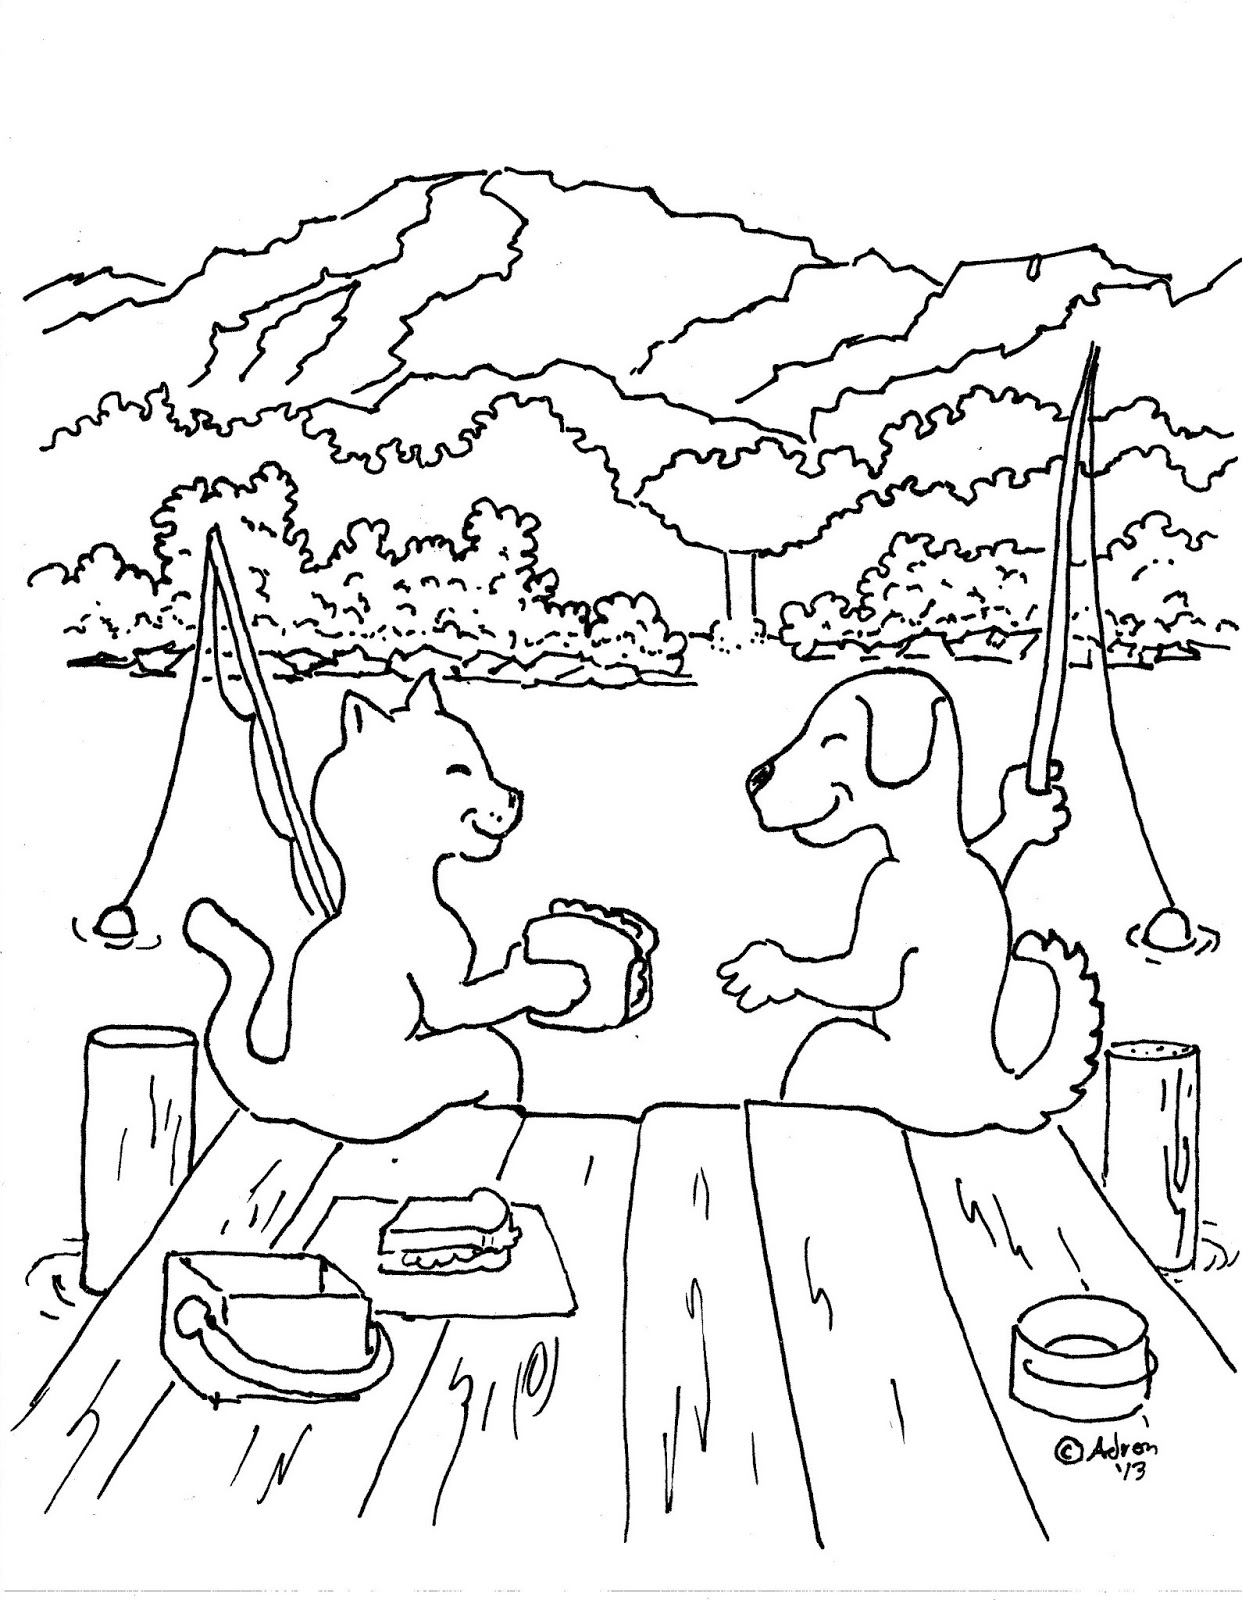 Coloring Pages for Kids by Mr. Adron: Dog And Cat Friends ...